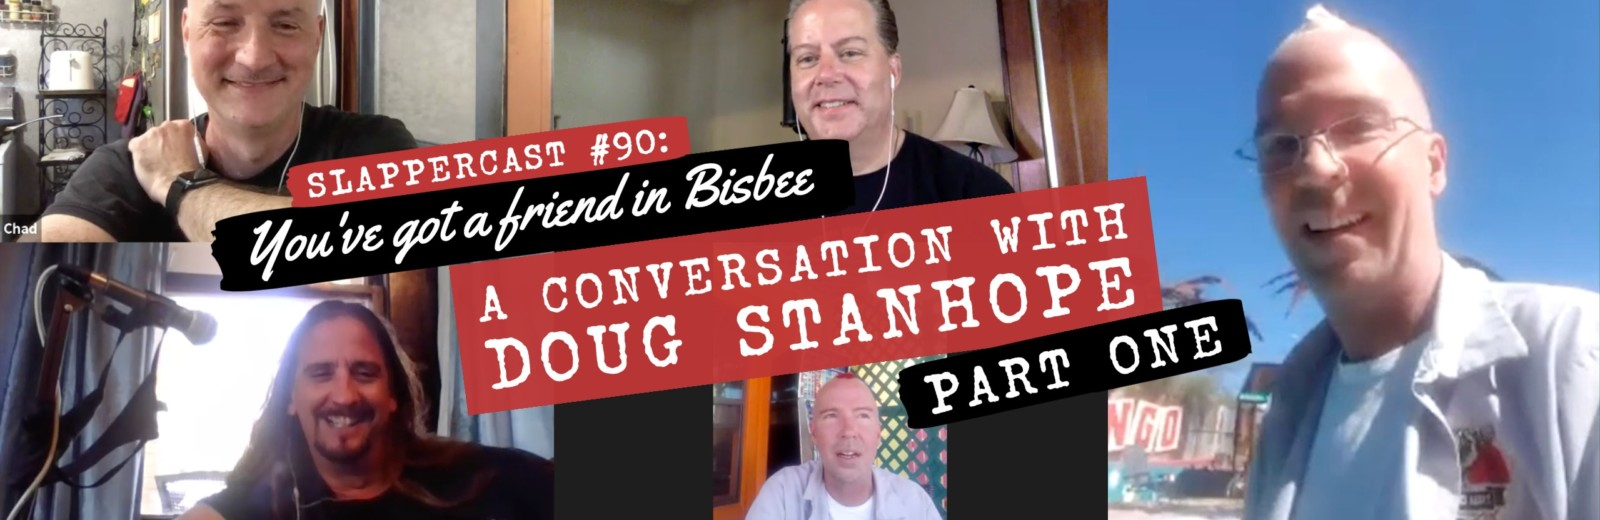 SlapperCast 90: You've Got a Friend in Bisbee | A Conversation with Doug Stanhope (Part One)